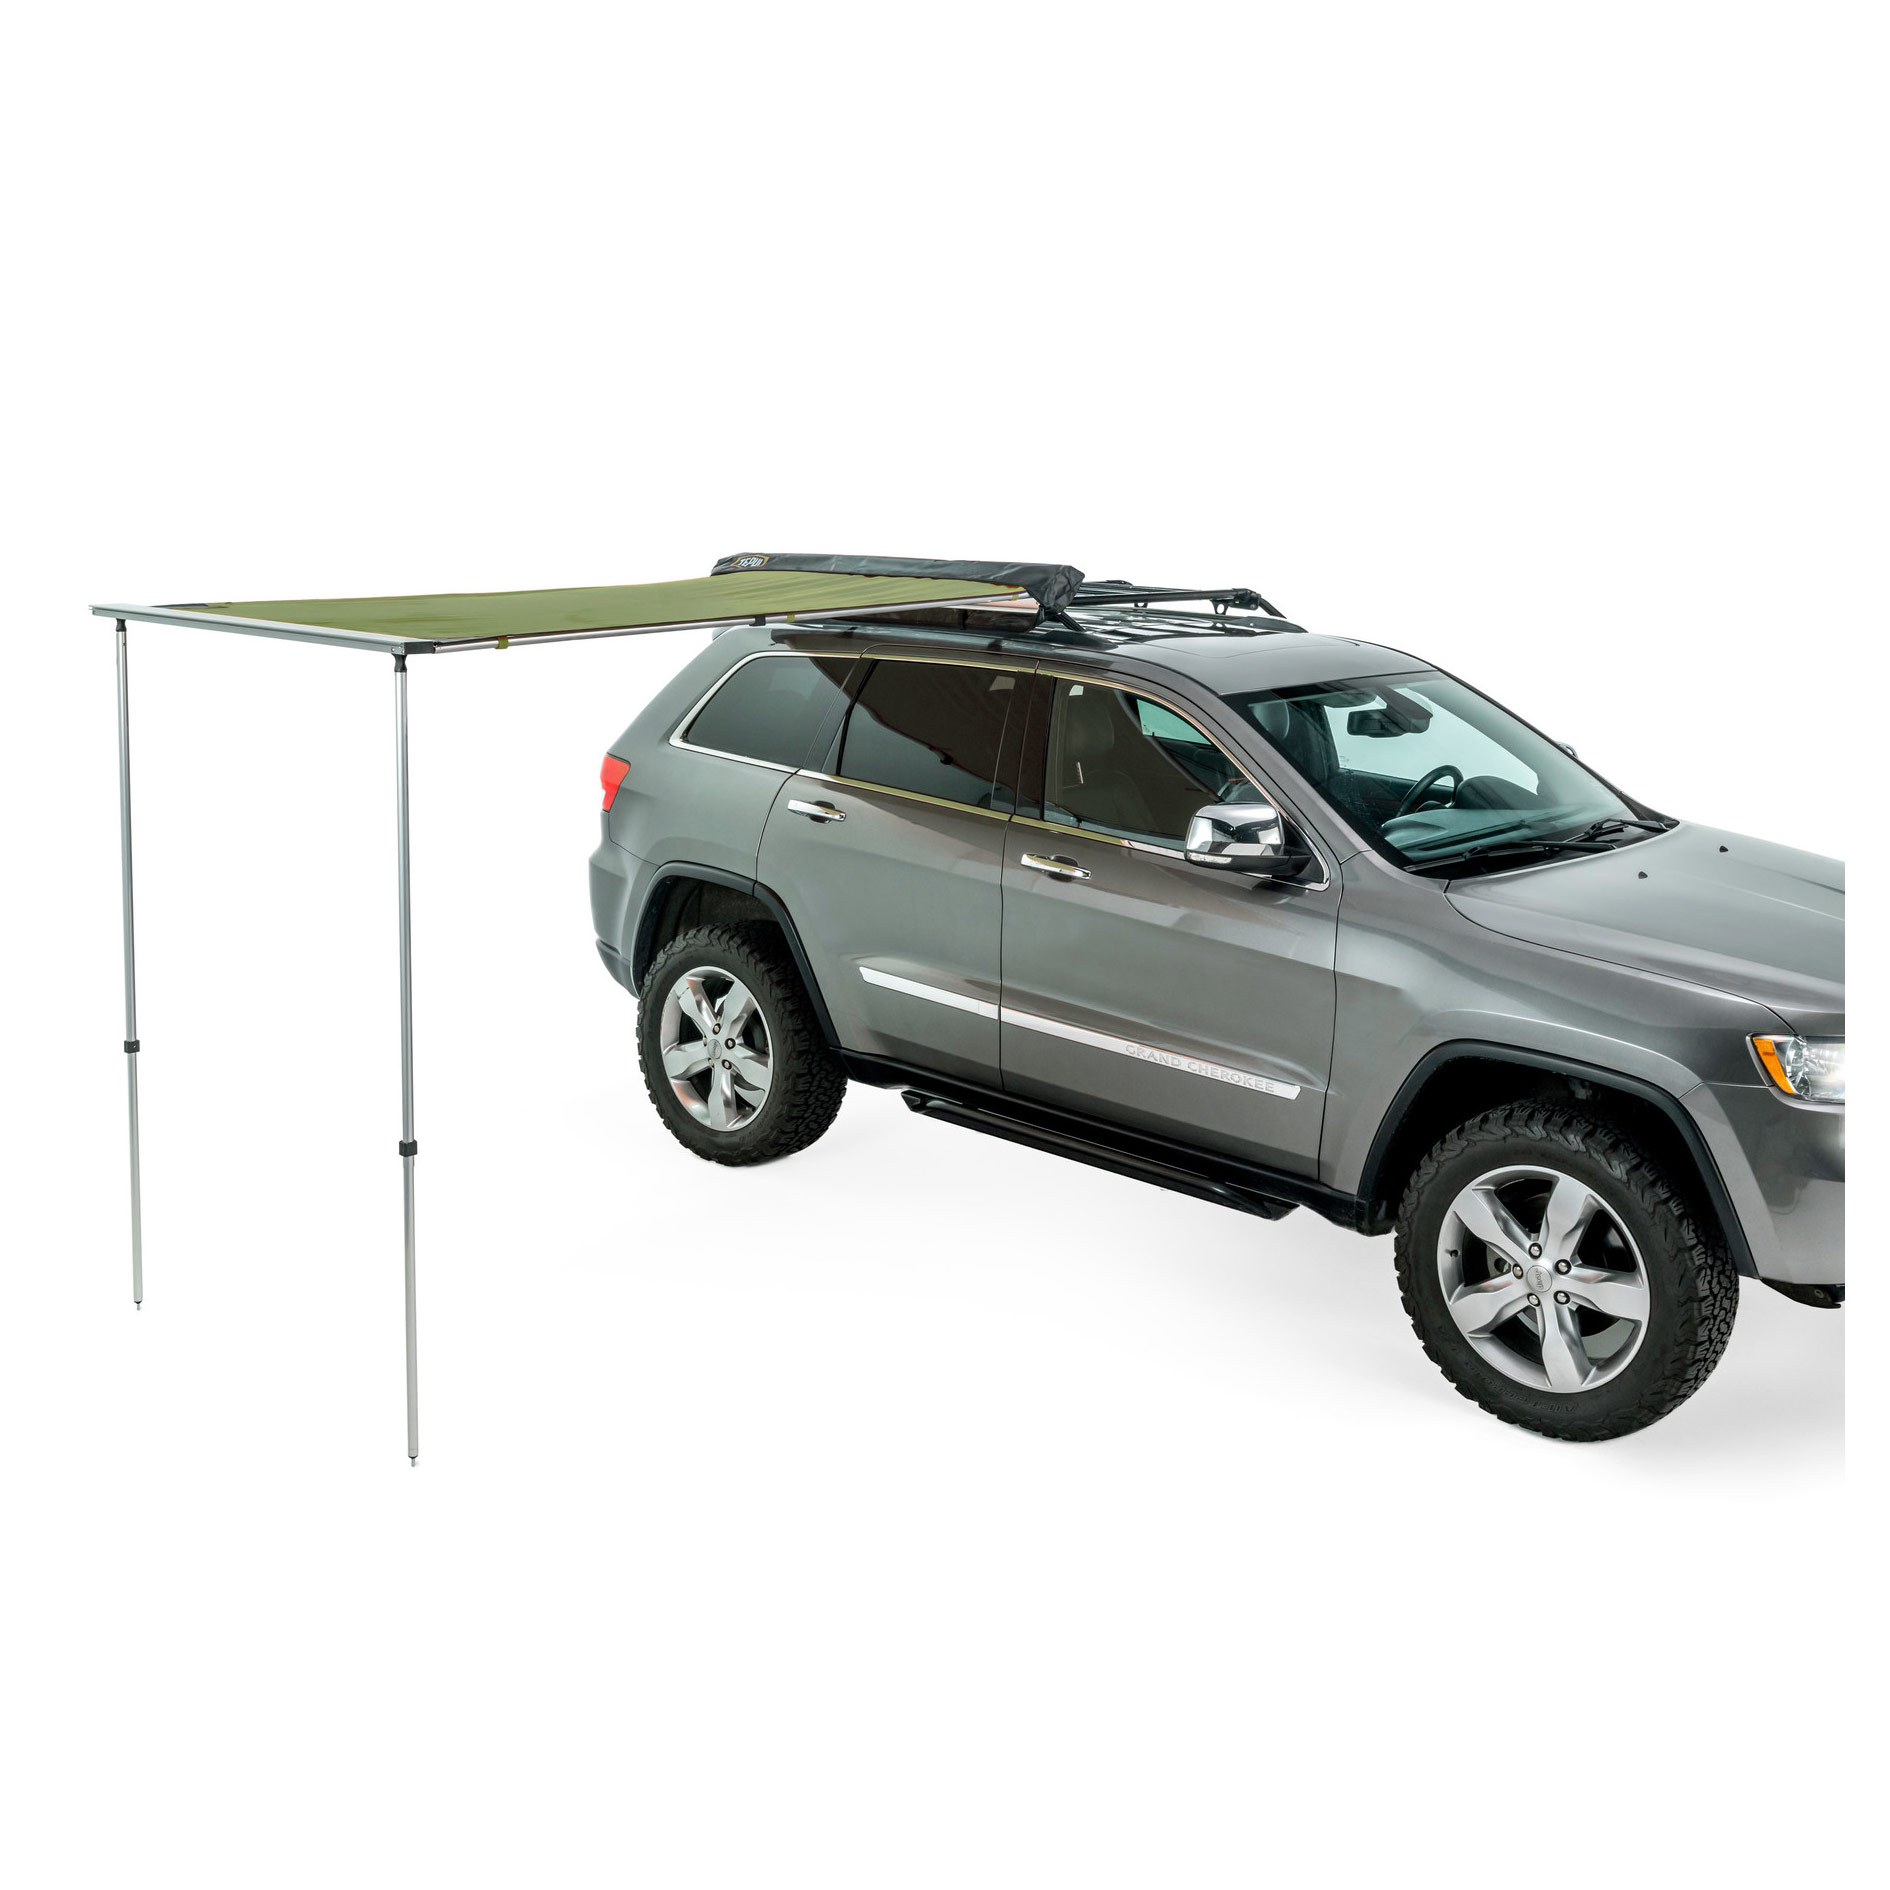 4' AWNING - OLIVE GREEN